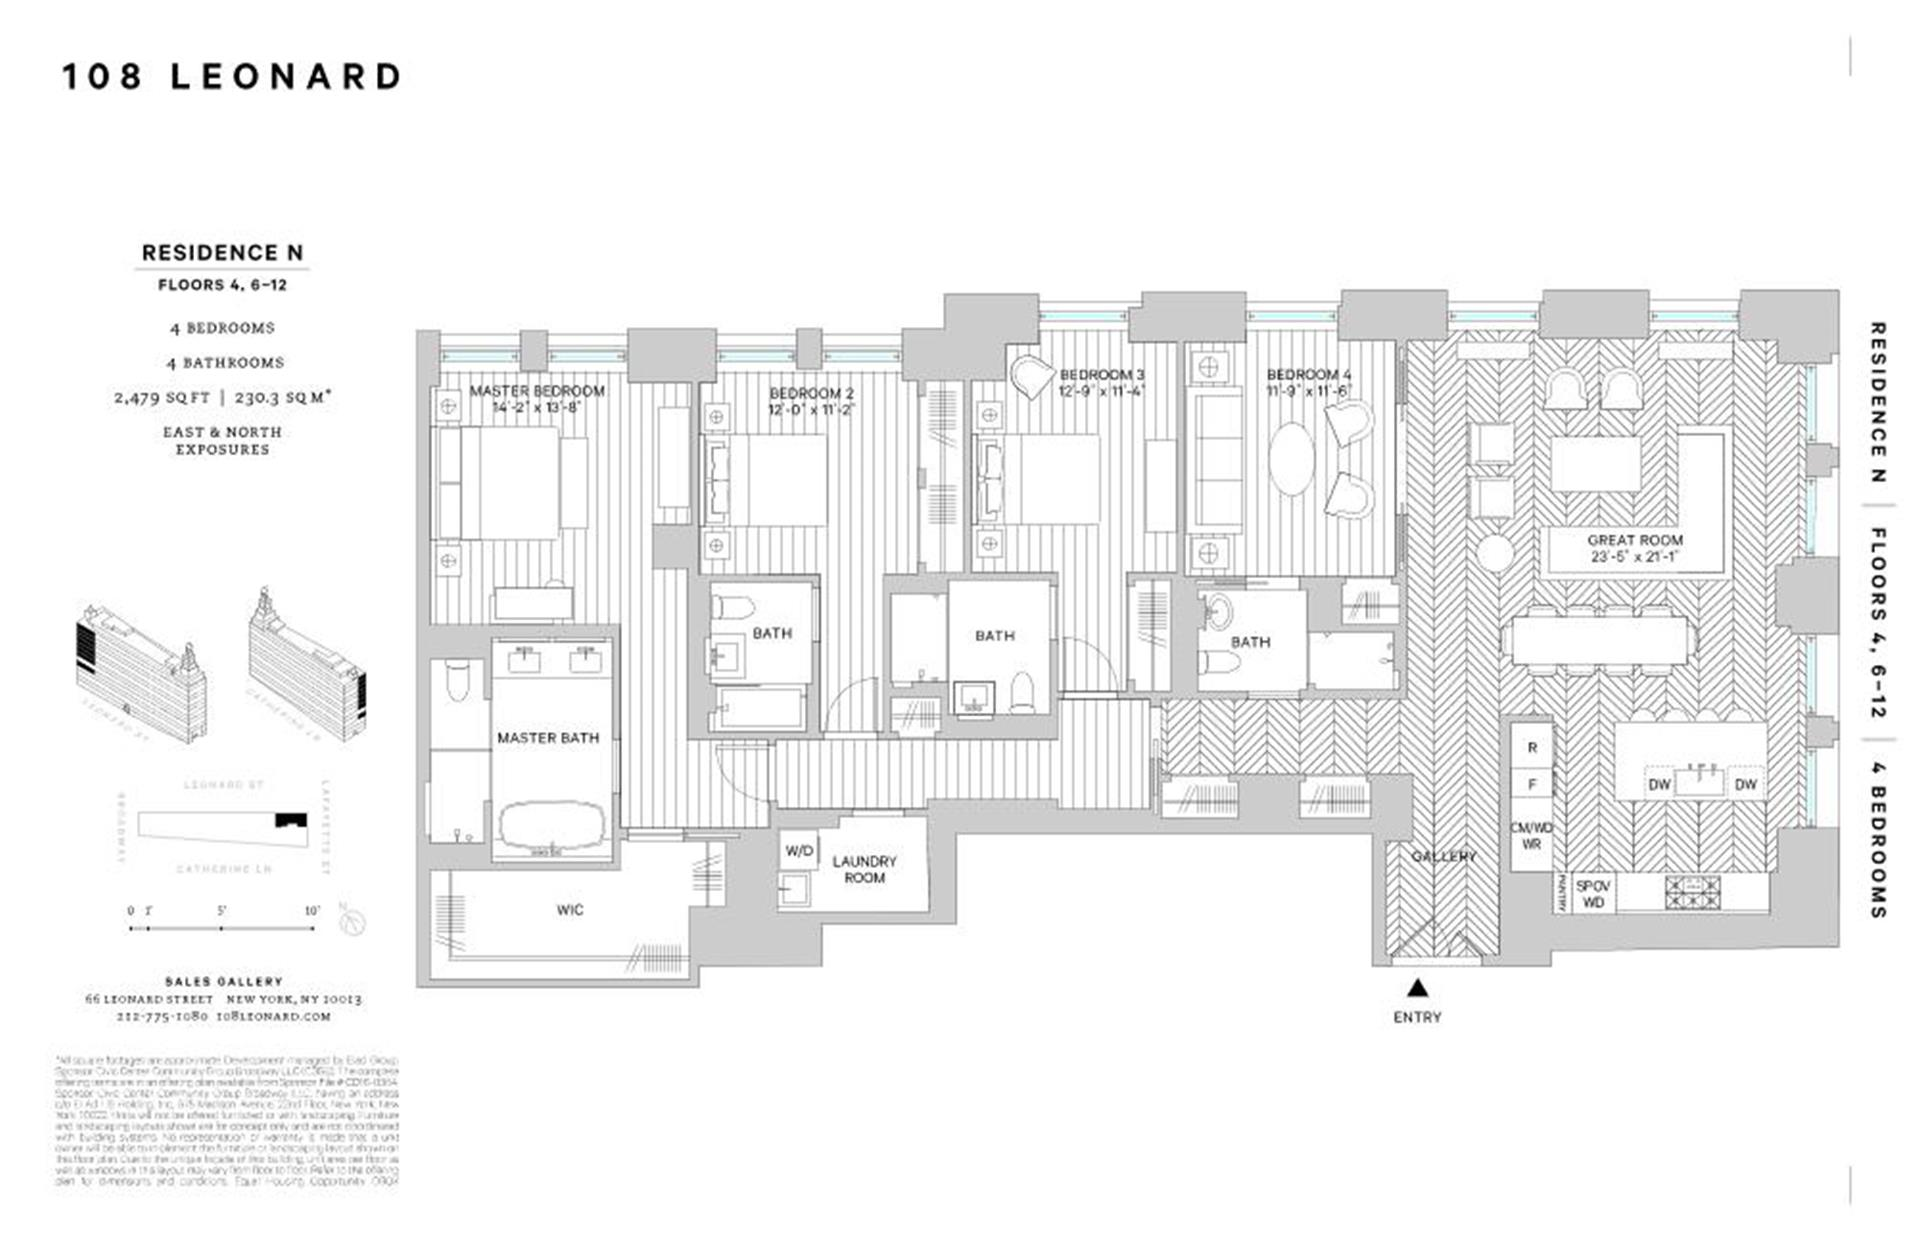 Floor plan of 108 Leonard Street, 9N - TriBeCa, New York